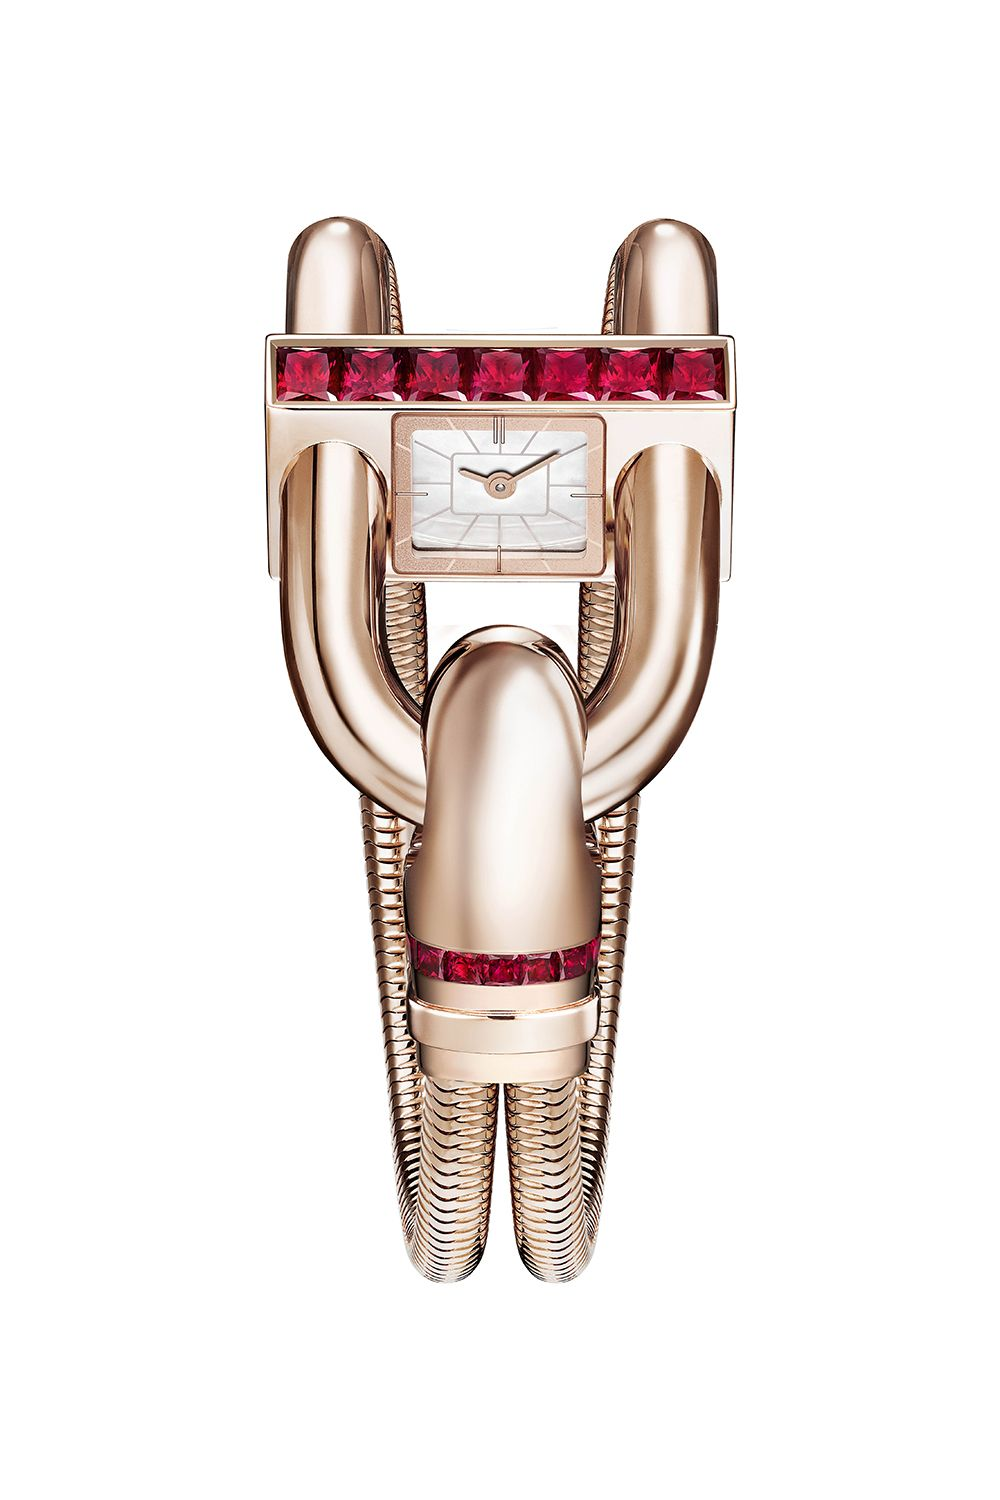 "<p>Also known as The Legendary Line, the Cadenas timepiece combines a watch and bracelet, creating the ultimate&nbsp&#x3B;must-have.<br></p><p>Retail price:&nbsp&#x3B;$71,000<span class=""redactor-invisible-space"" data-verified=""redactor"" data-redactor-tag=""span"" data-redactor-class=""redactor-invisible-space""></span><br></p><p><span class=""redactor-invisible-space"" data-verified=""redactor"" data-redactor-tag=""span"" data-redactor-class=""redactor-invisible-space""></span></p>"